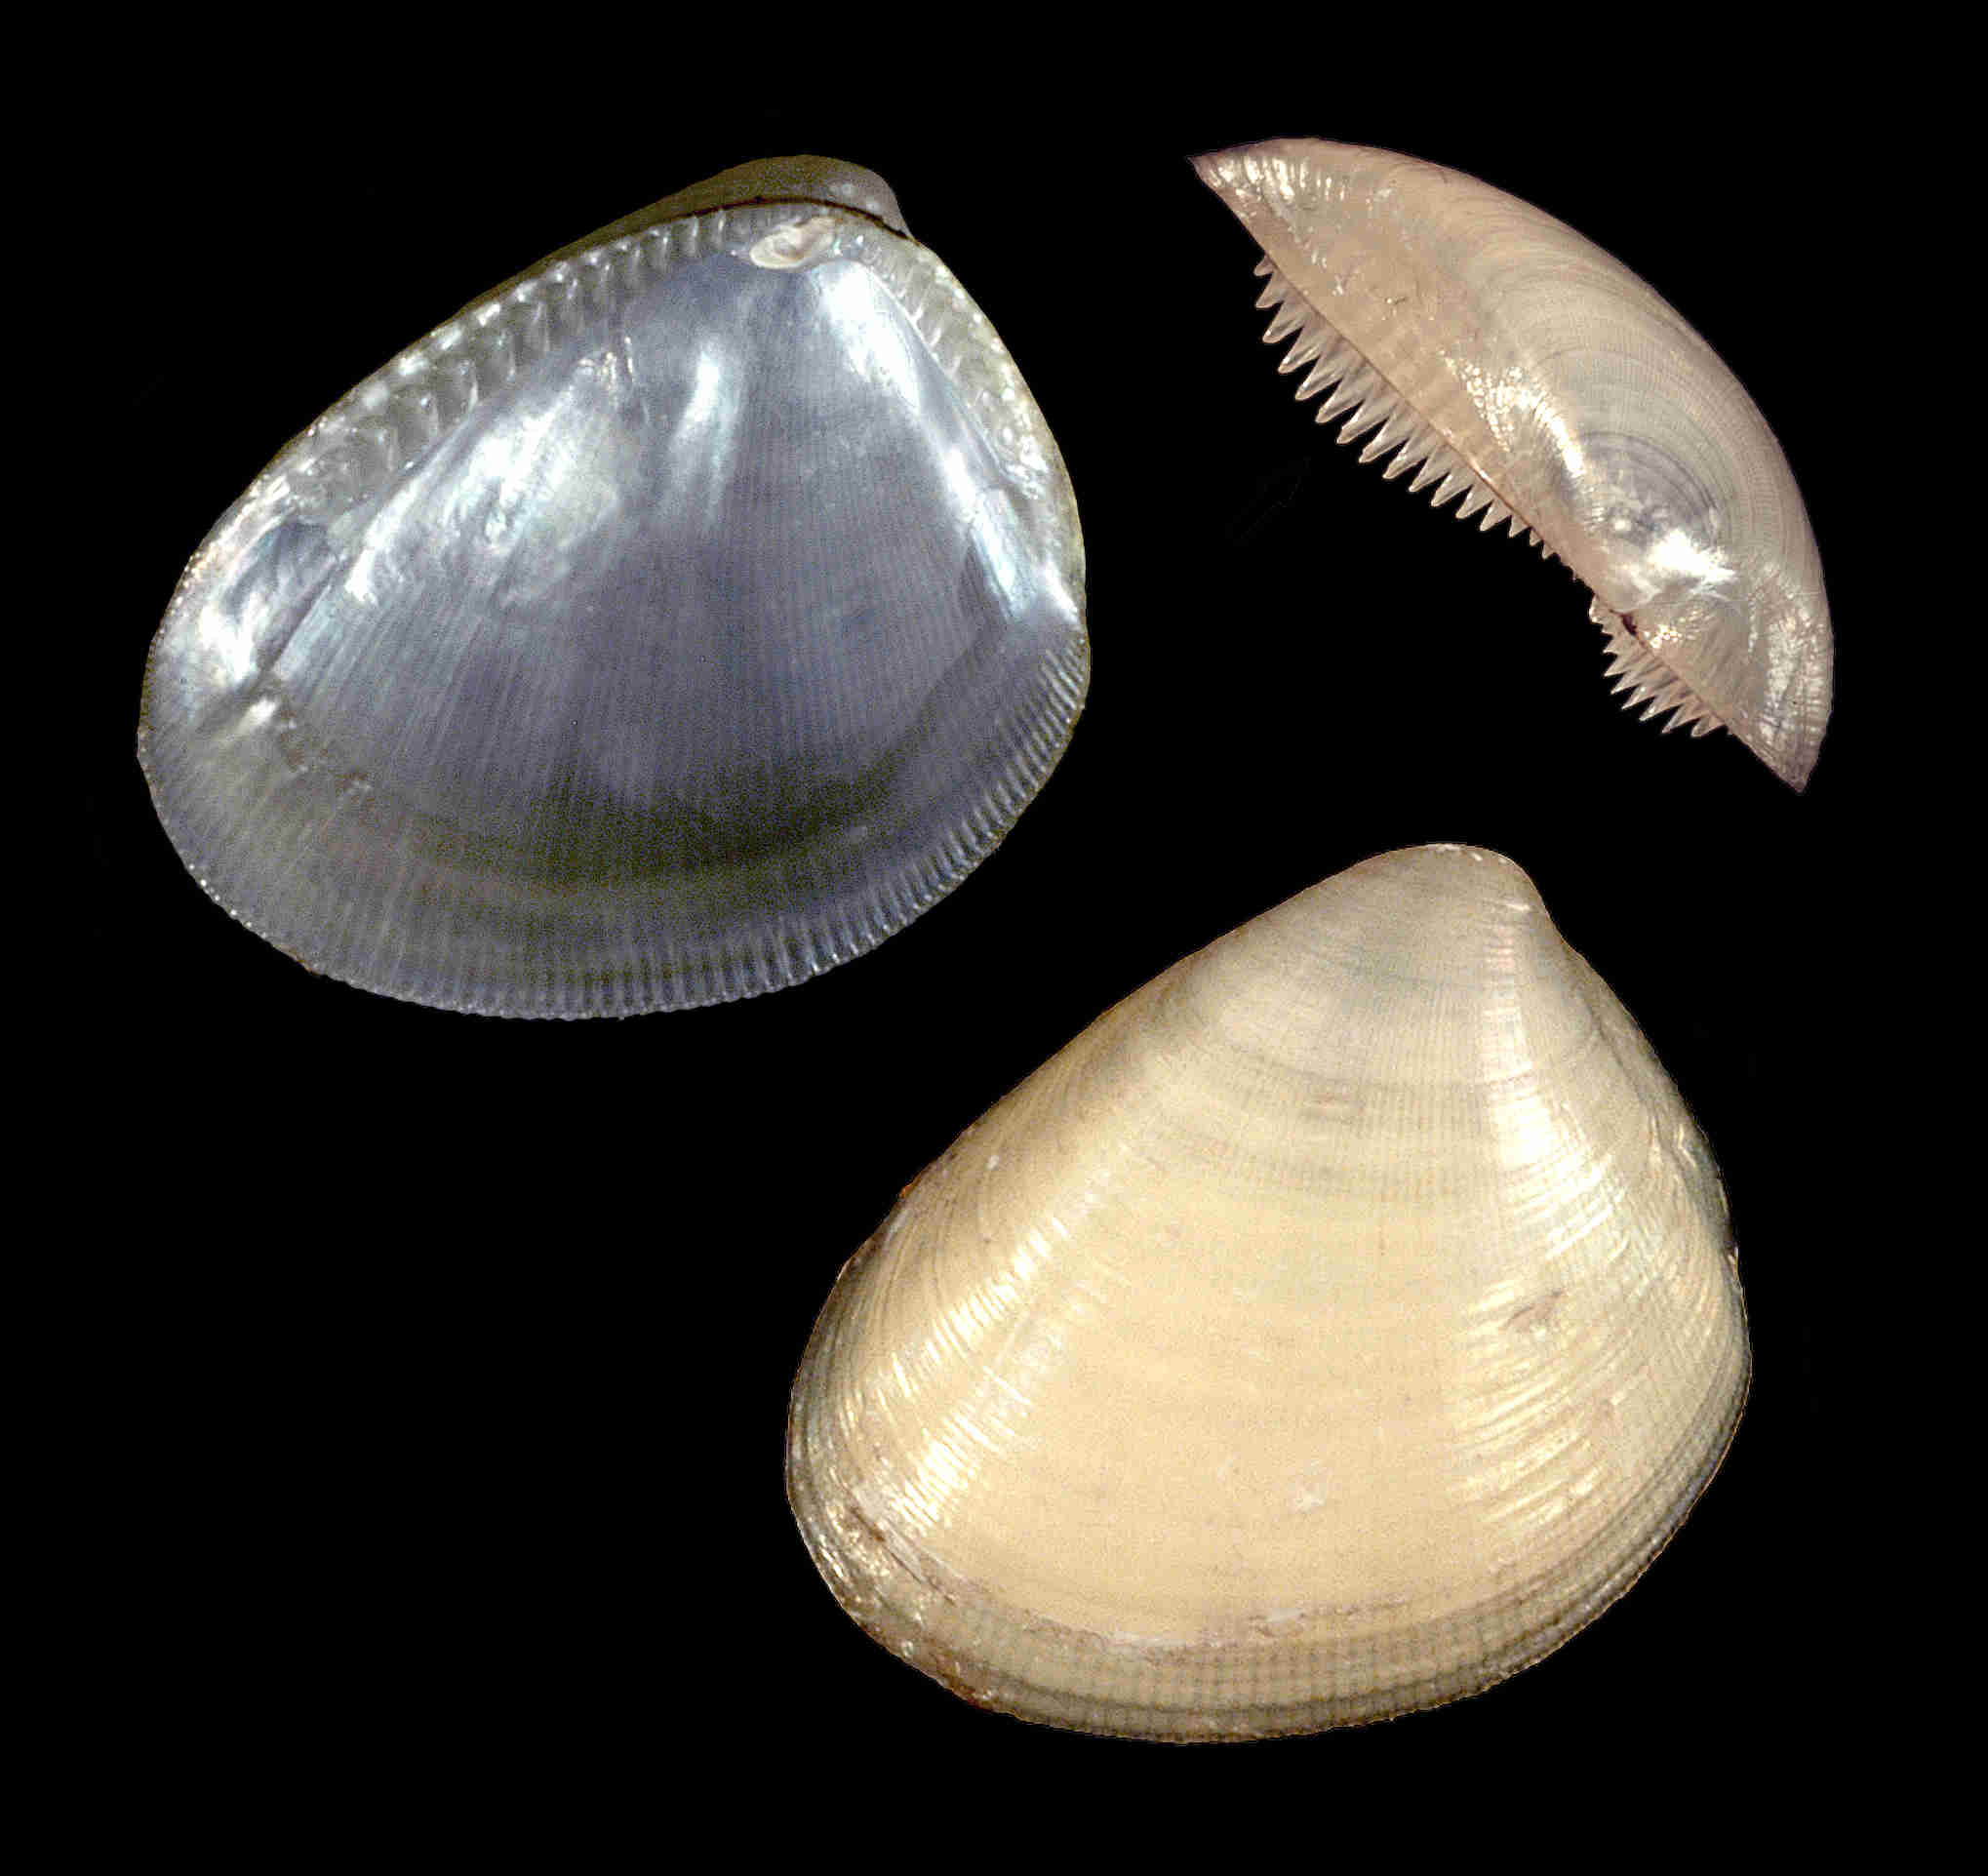 Atlantic Nut Clam